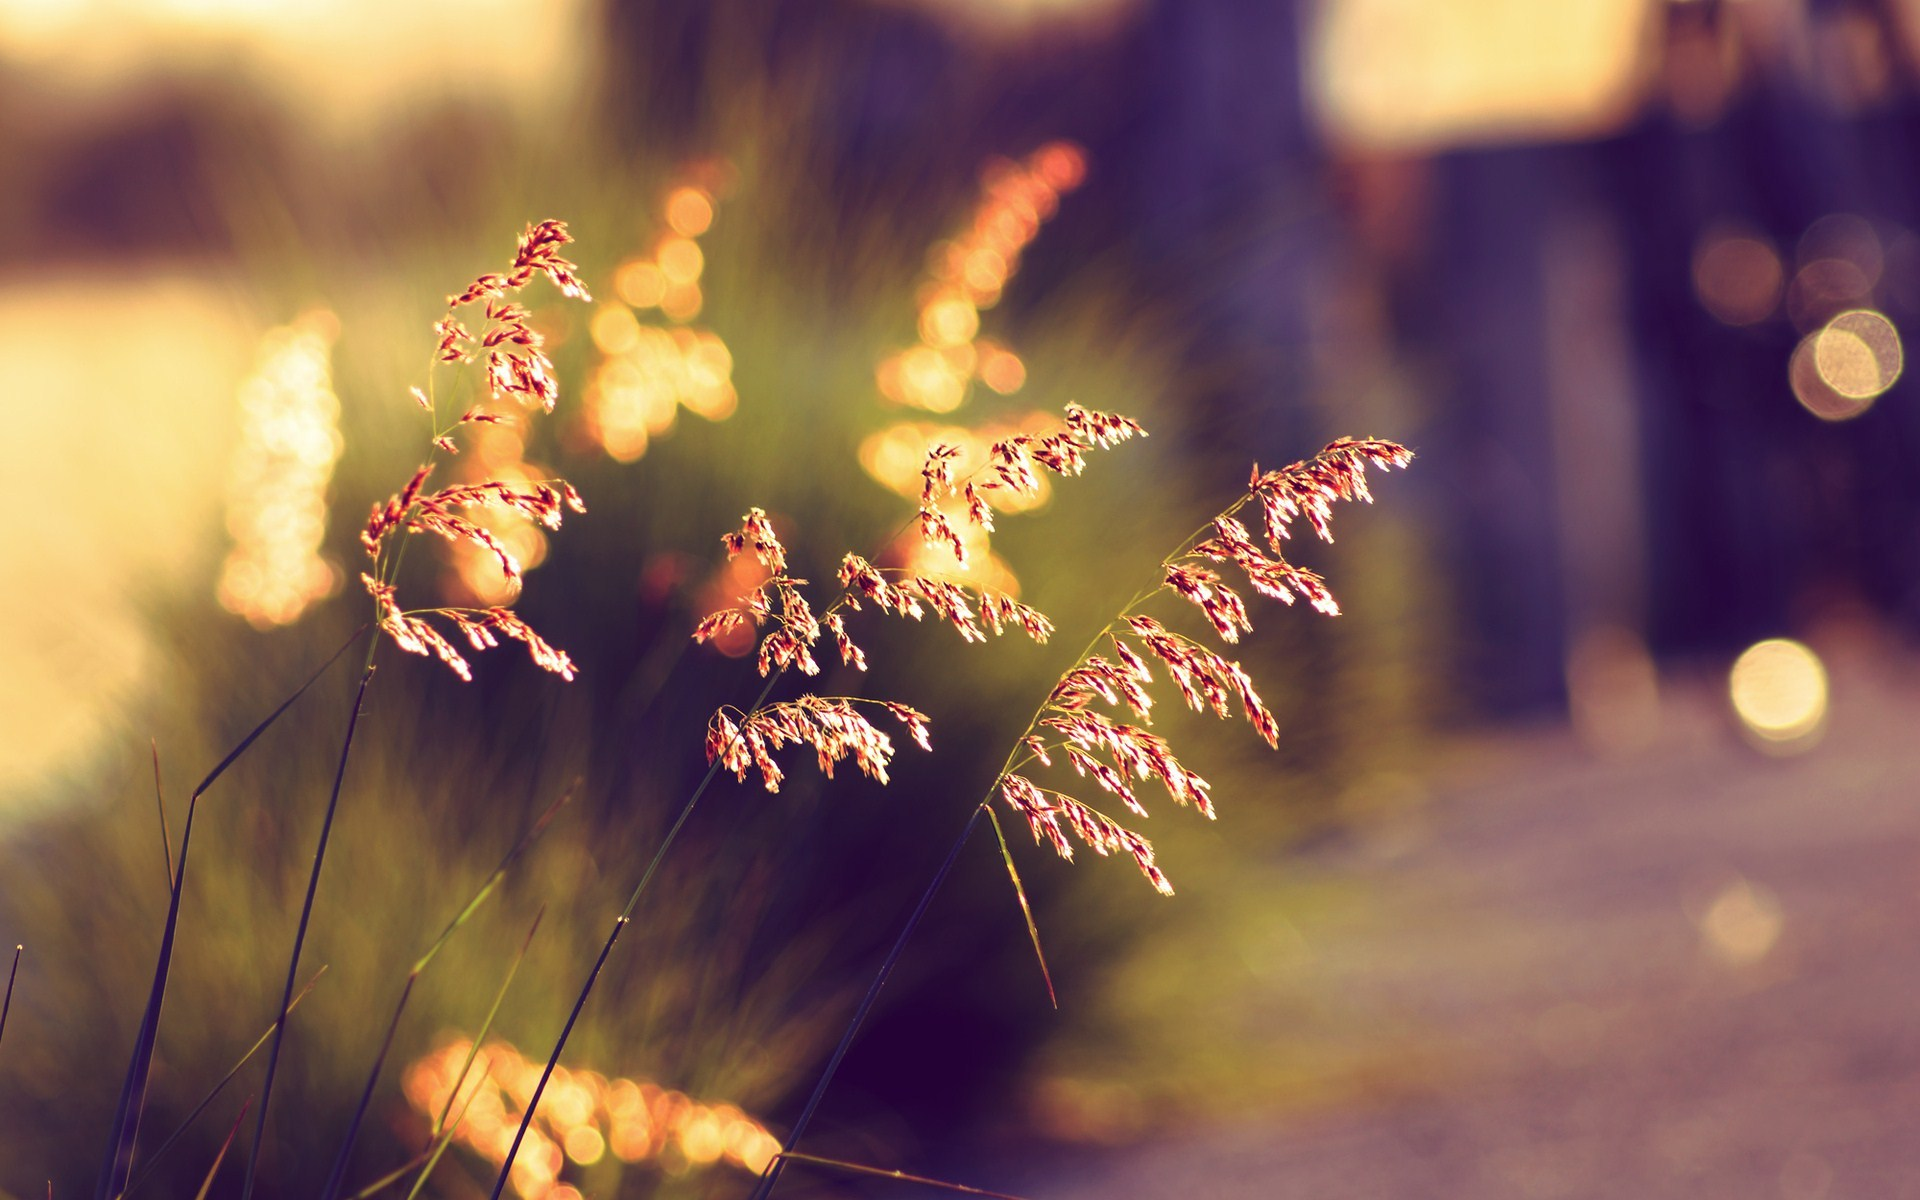 Hd wallpaper bokeh - 20 Beautiful Hd Bokeh Wallpapers